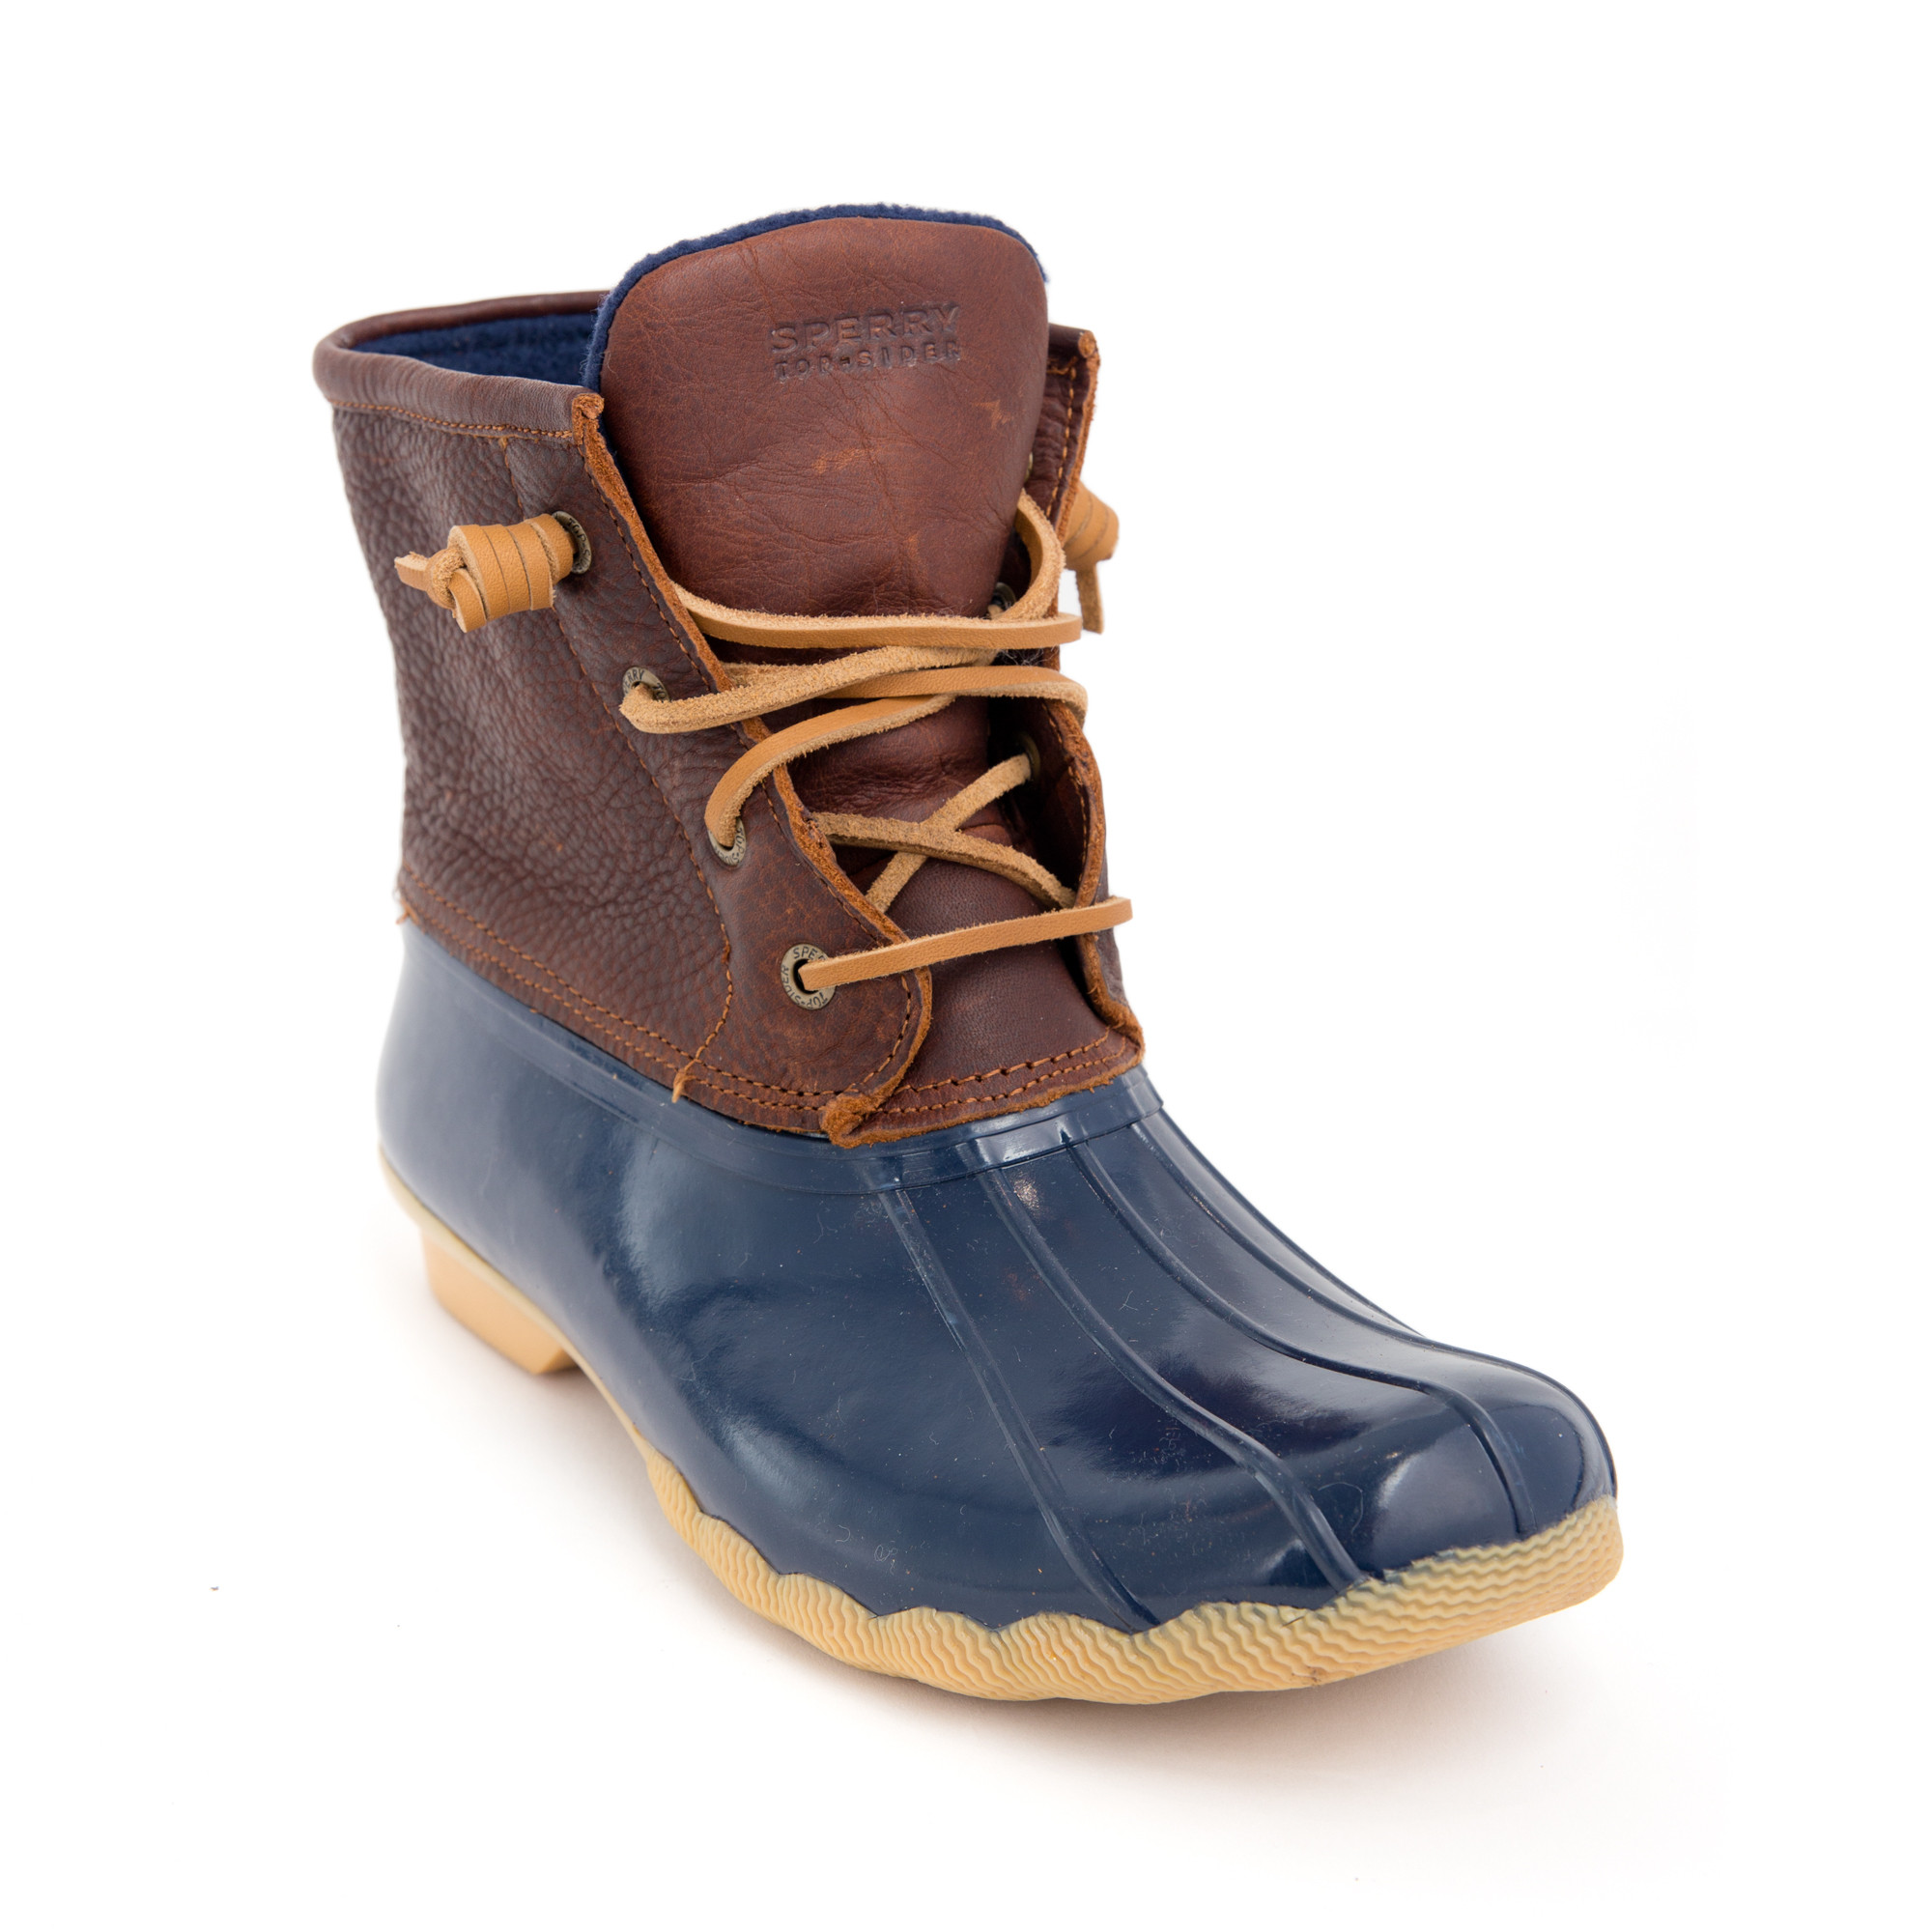 Sperry-Saltwater-Duck-Boots-Tan-Navy-1